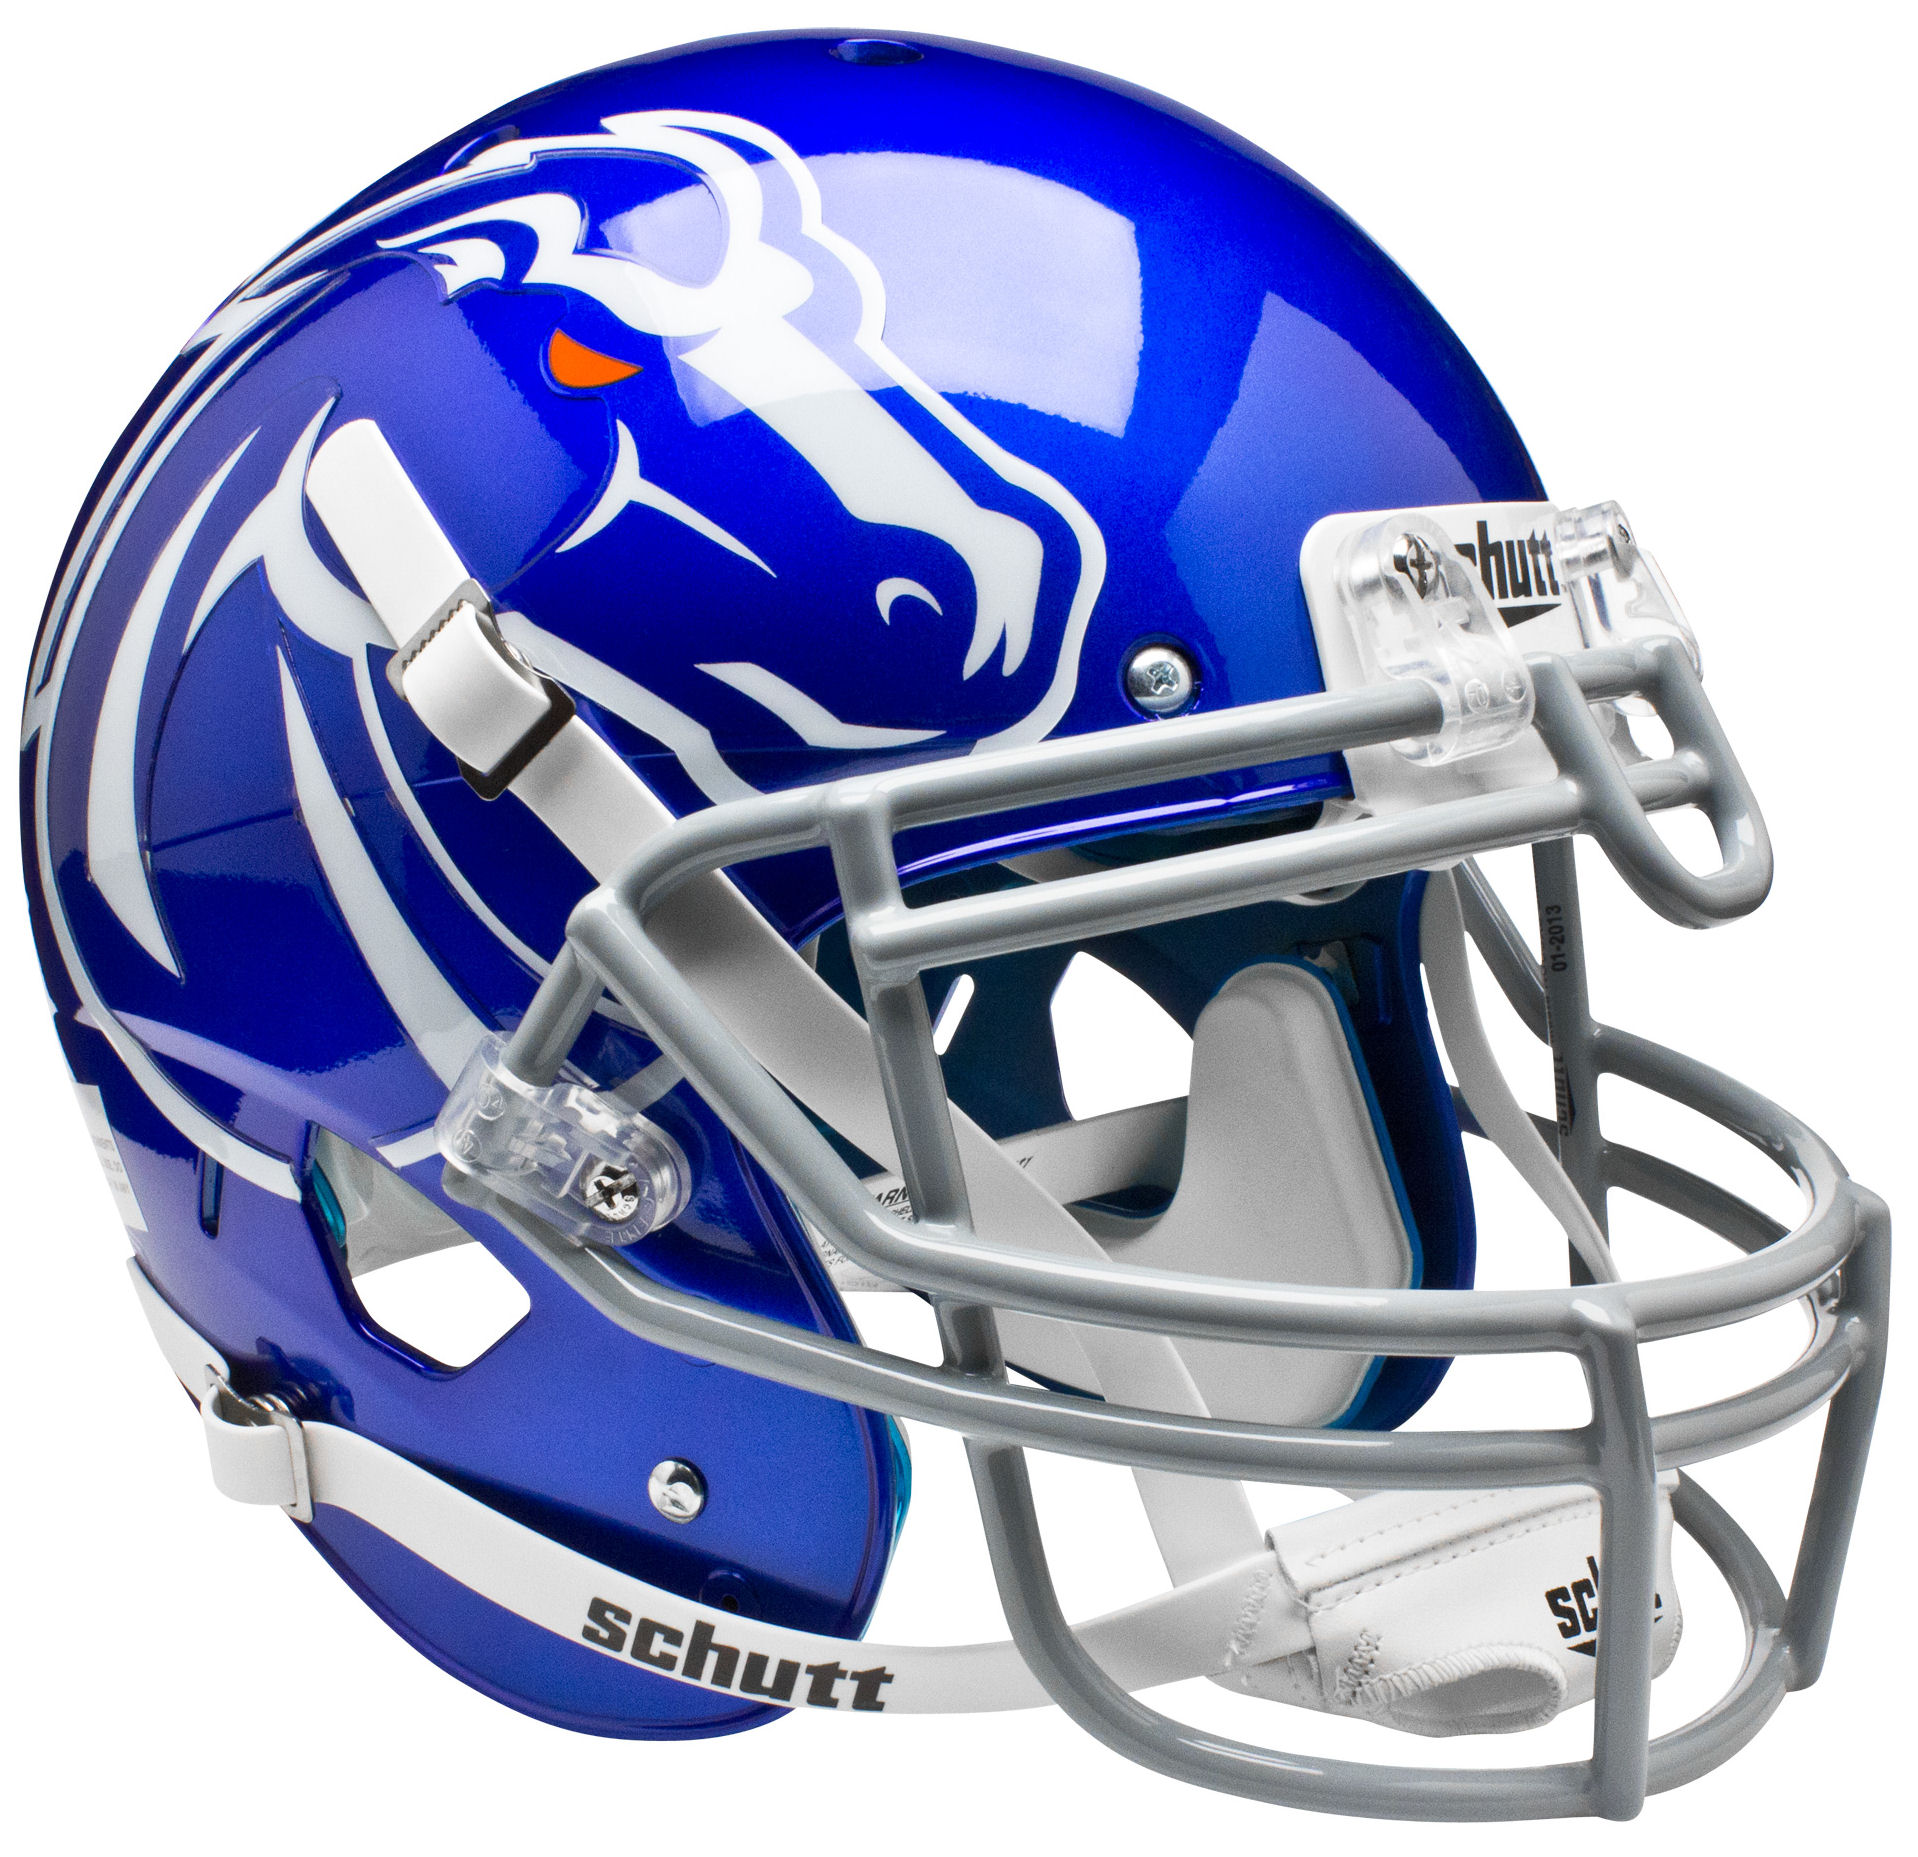 Boise State Broncos Authentic College Xp Football Helmet Schutt Football Helmets Broncos Helmet Boise State